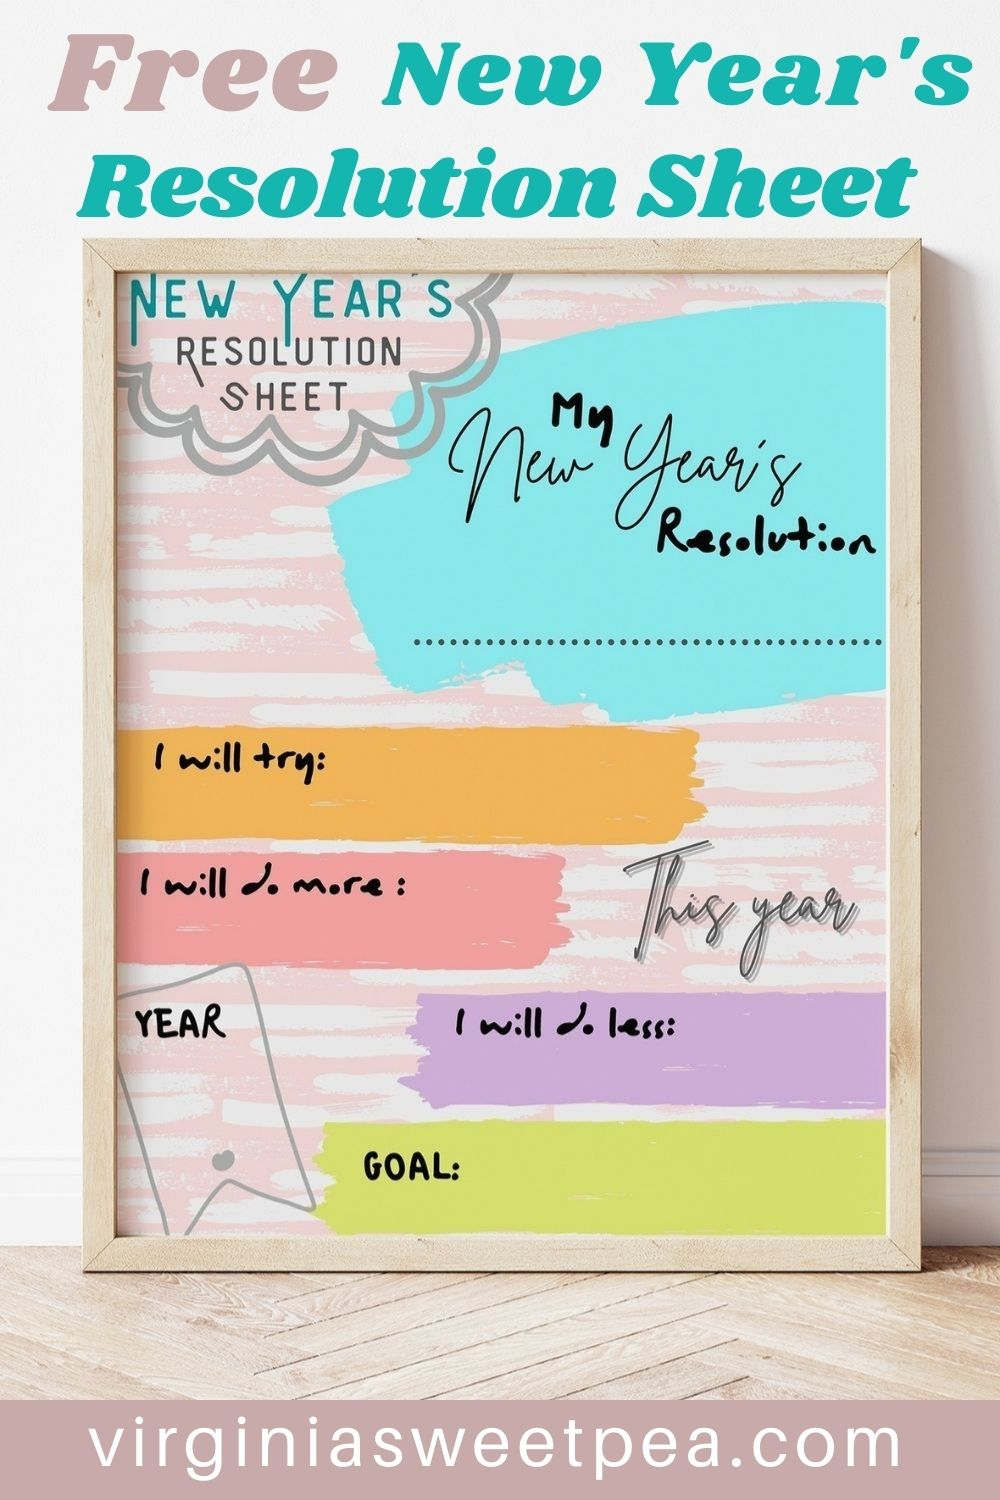 Set your goals for 2021 using this free to print New Year's resolution page.  Post it on your bulletin board, office wall or refrigerator to remind you of what you want to accomplish in 2021. via @spaula